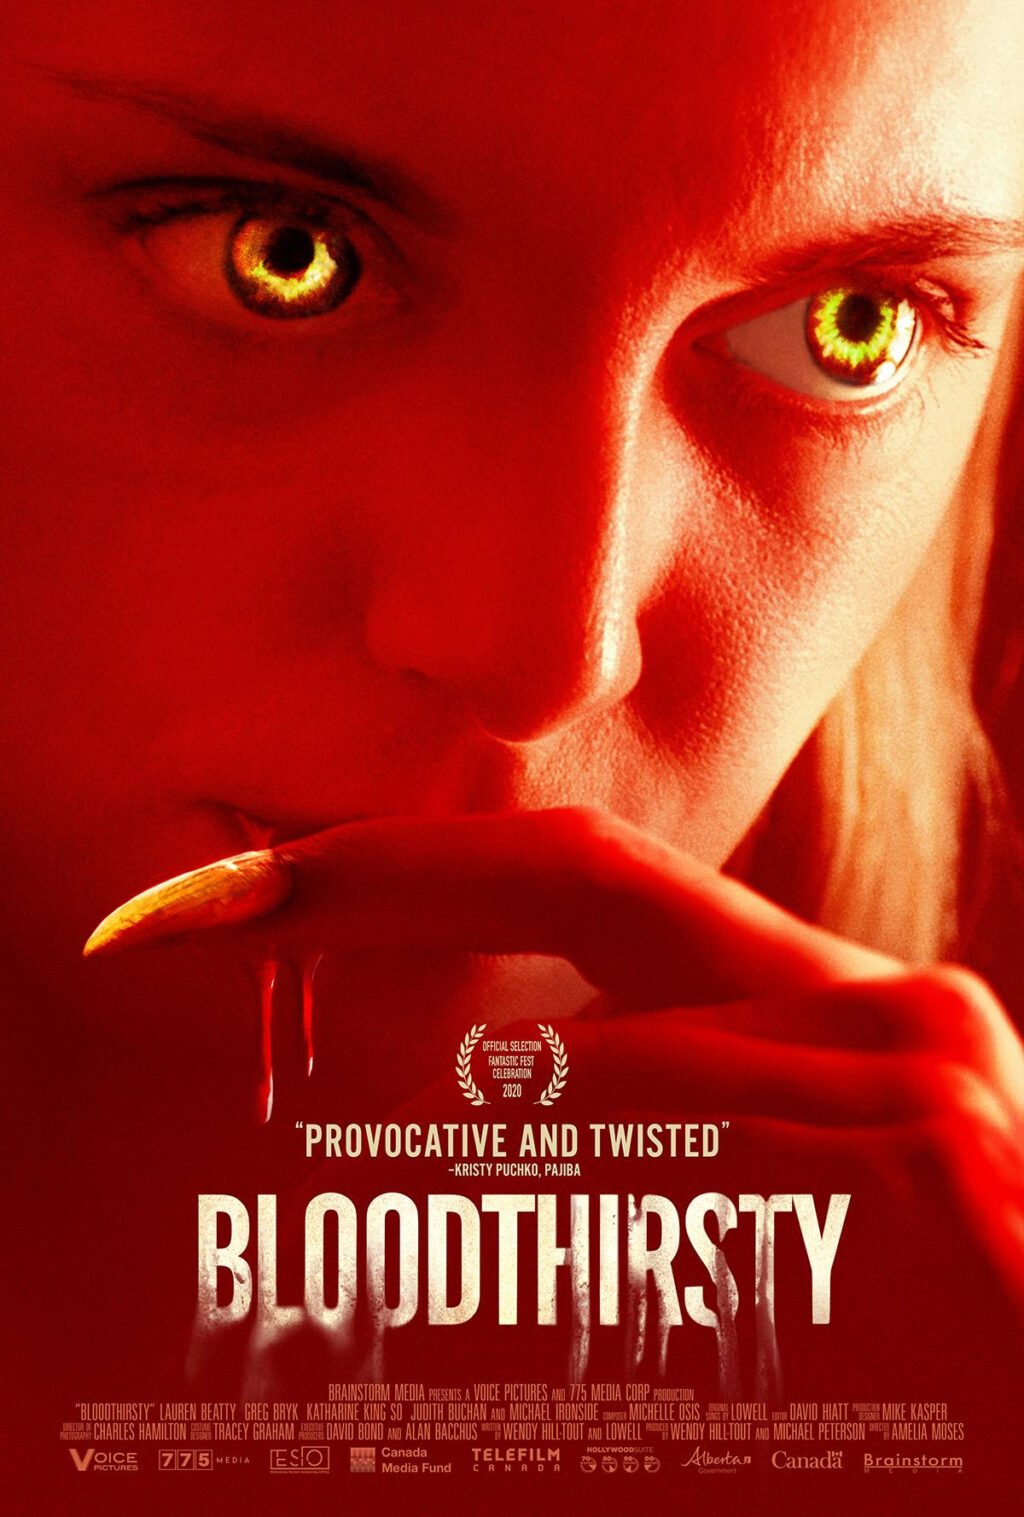 unnamed 52 1024x1517 - Trailer & Poster for Female-Fronted Werewolf Horror BLOODTHIRSTY Arriving April 23rd